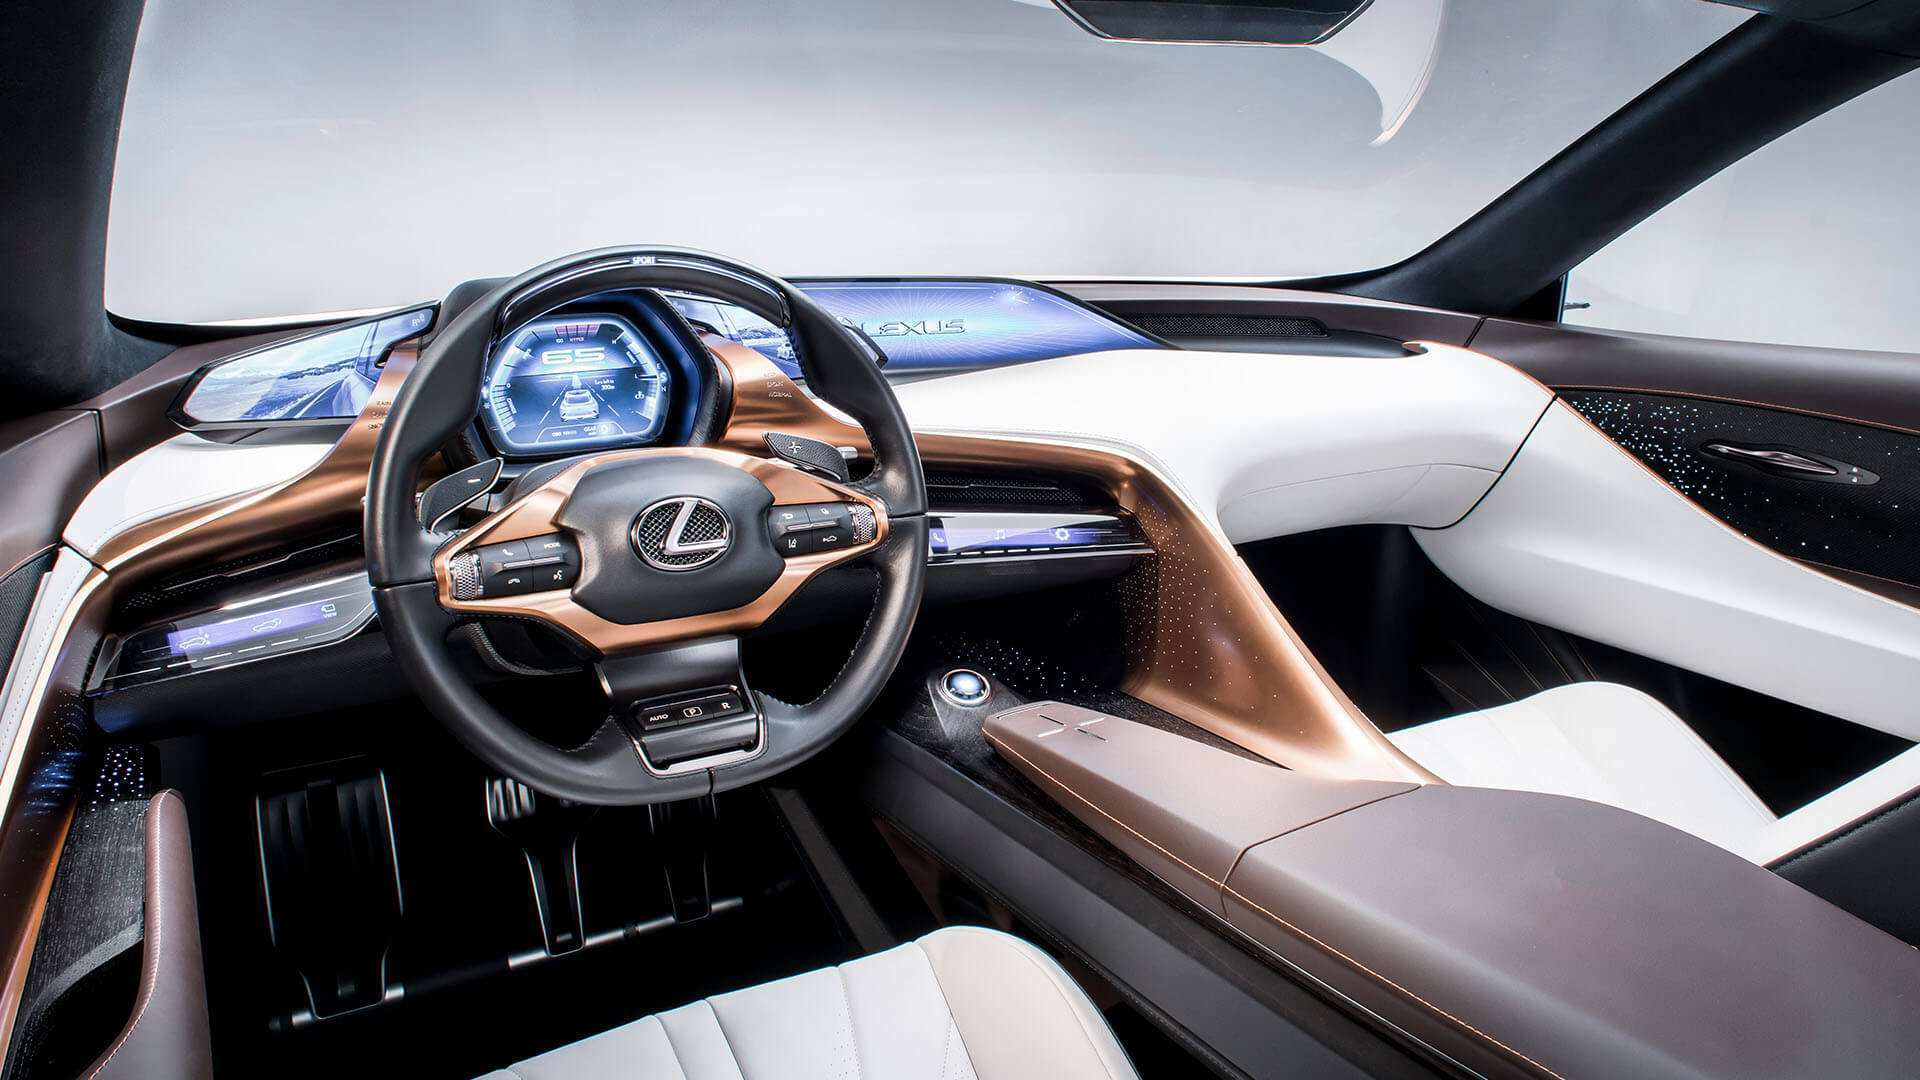 17 The Lexus Lf 1 Limitless 2020 Research New with Lexus Lf 1 Limitless 2020